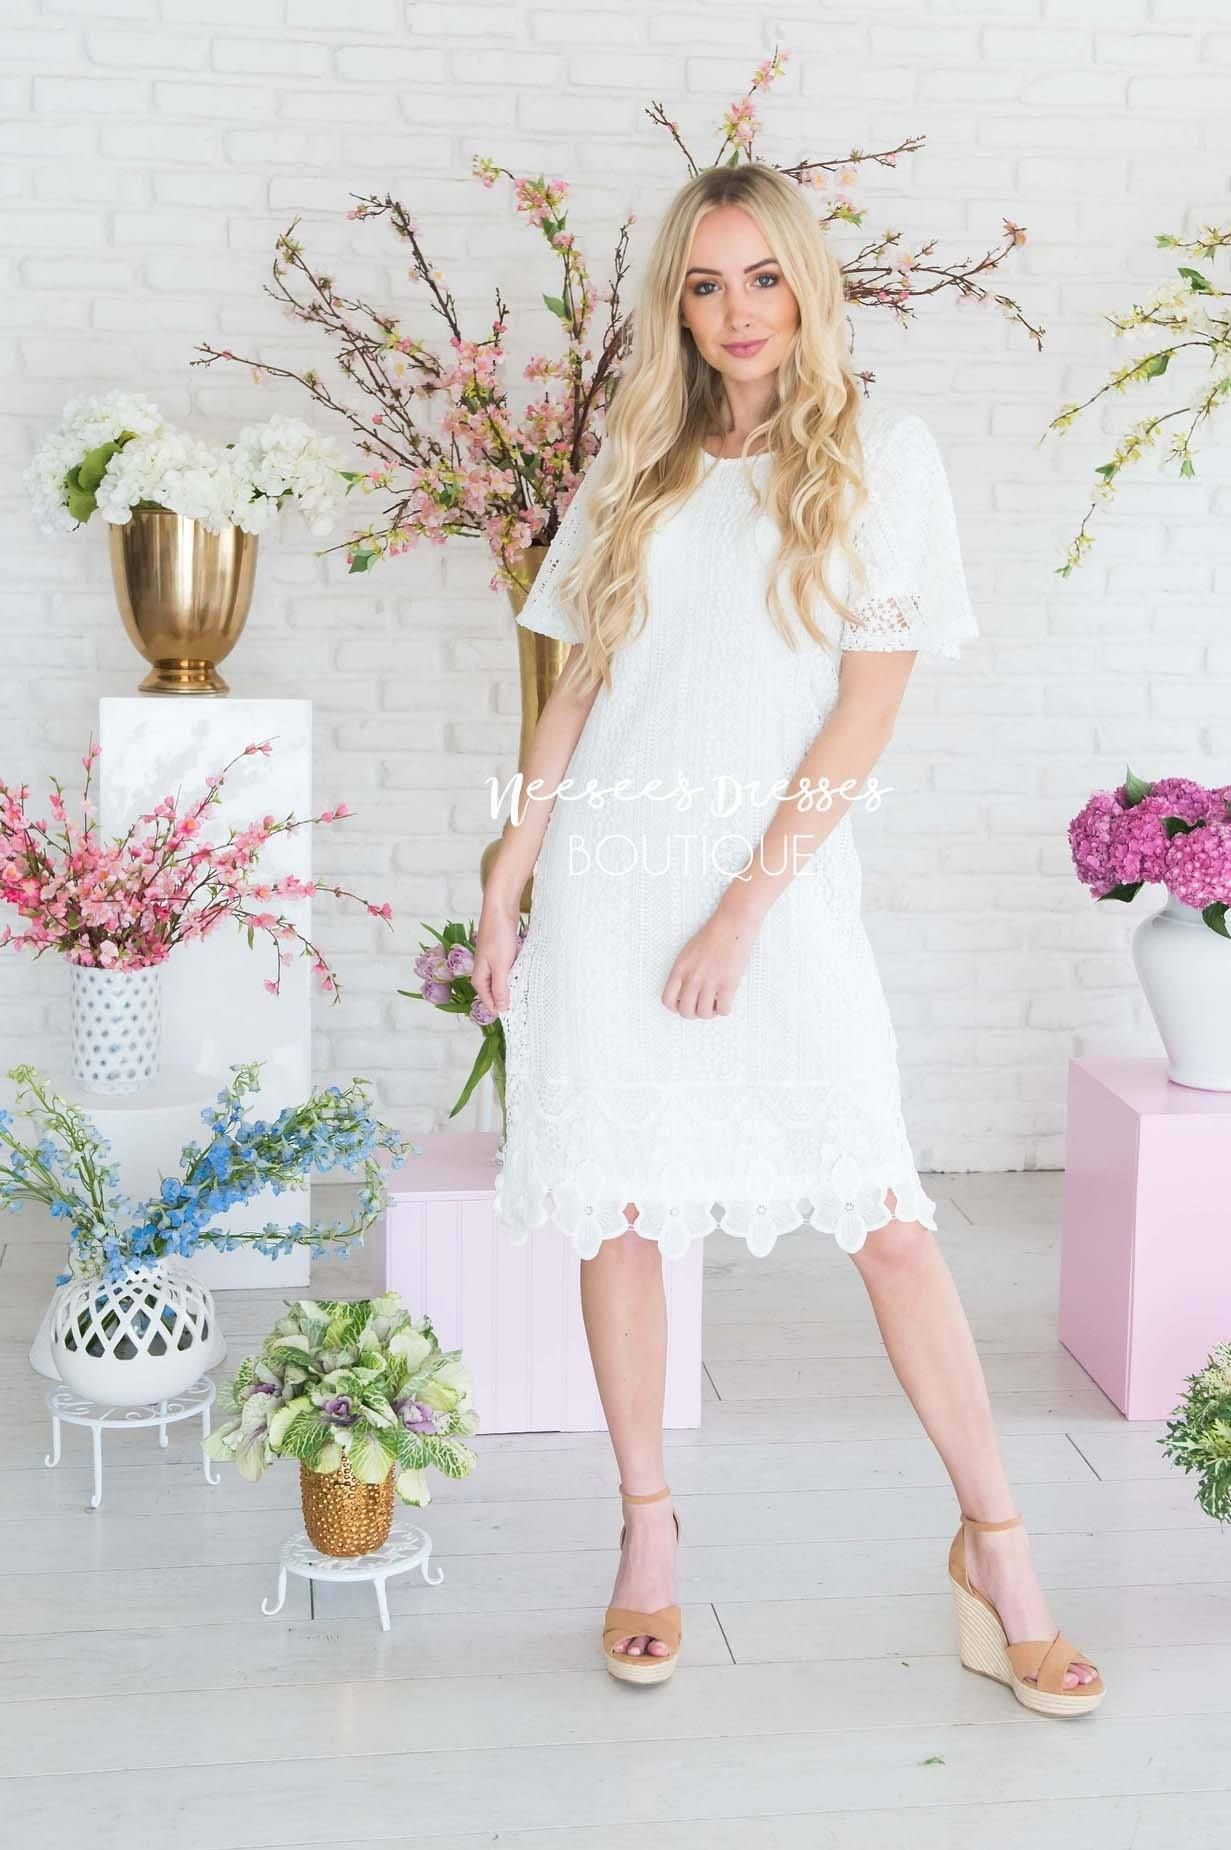 White Lace Overlay Modest Church Dress Best And Affordable Modest Boutique Cute Modest Dresses And Skirts Modest Dresses Short Sleeve Wedding Dress Dresses [ 1850 x 1231 Pixel ]